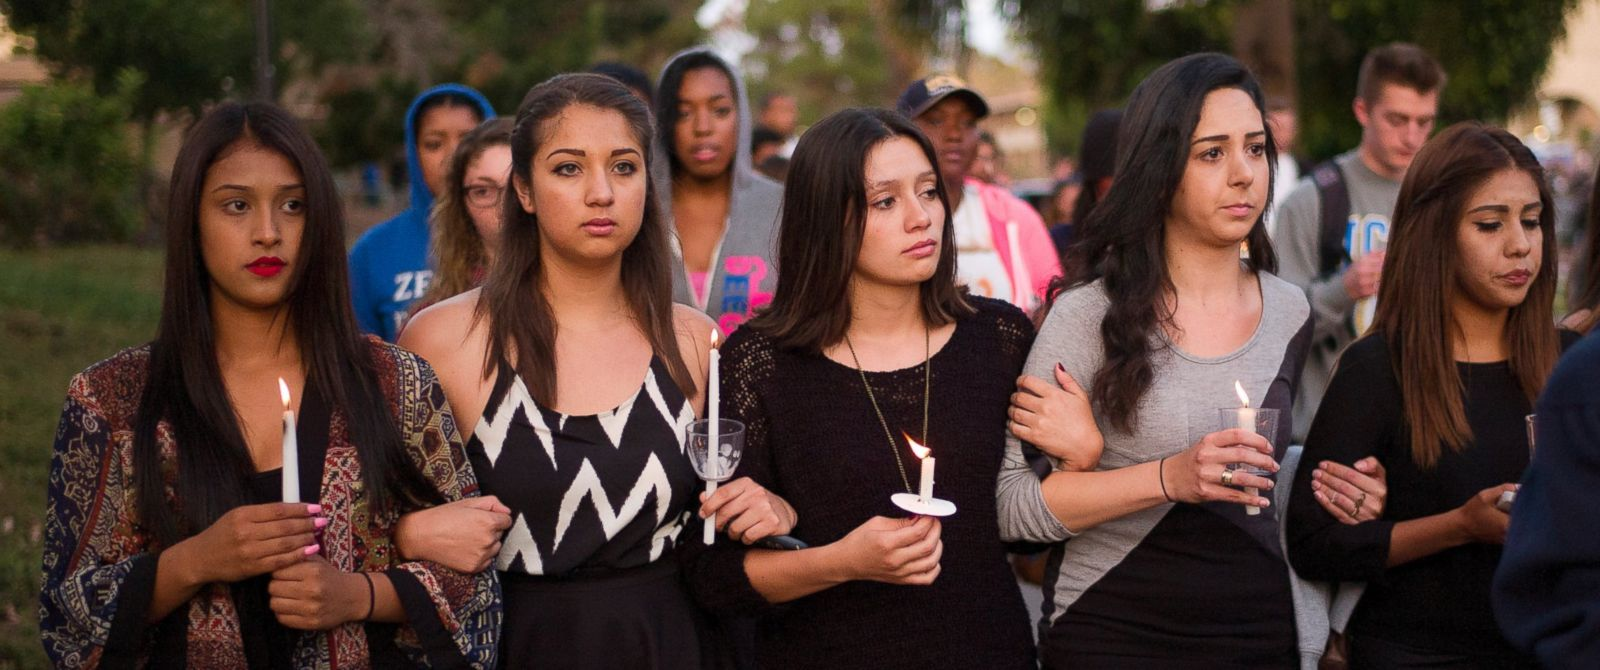 PHOTO: Students march on the campus of the University of California, Santa Barbara during a candlelight vigil held to honor the victims of Friday nights mass shooting on May 24, 2014, in Isla Vista, Calif.